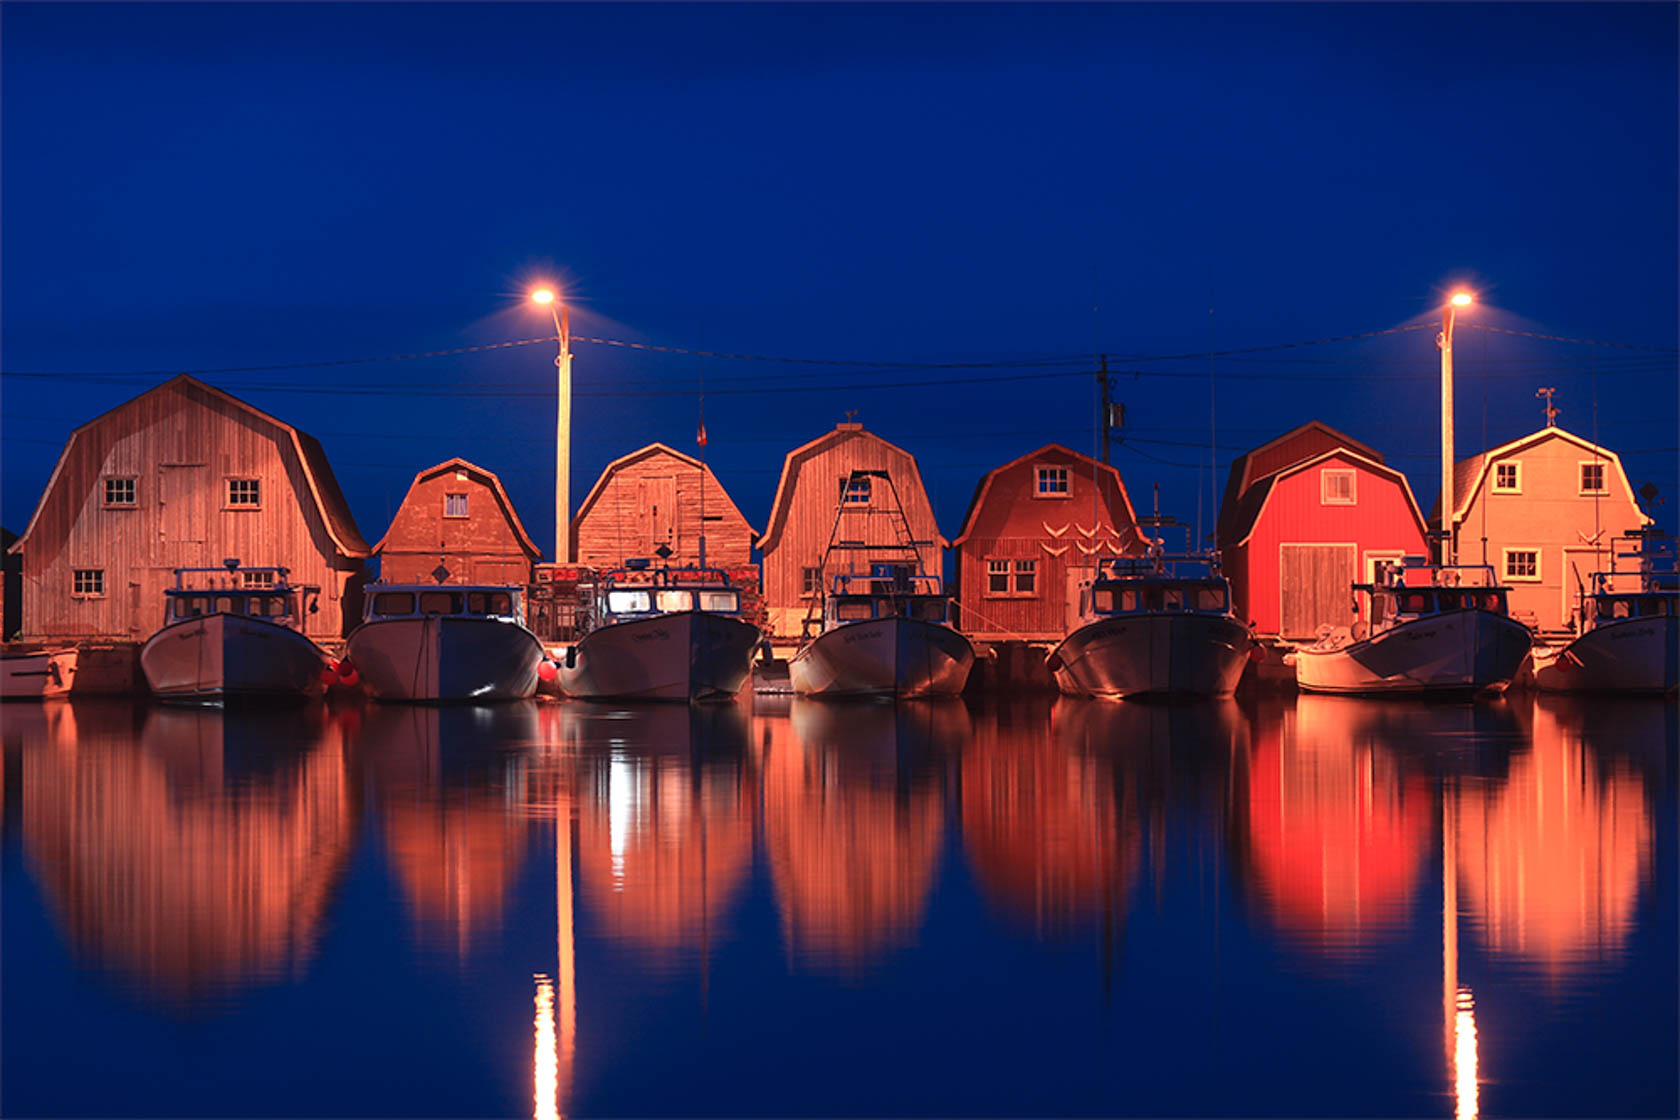 Photo of boat sheds lit at night shot on Canon EOS M10 Compact System Camera